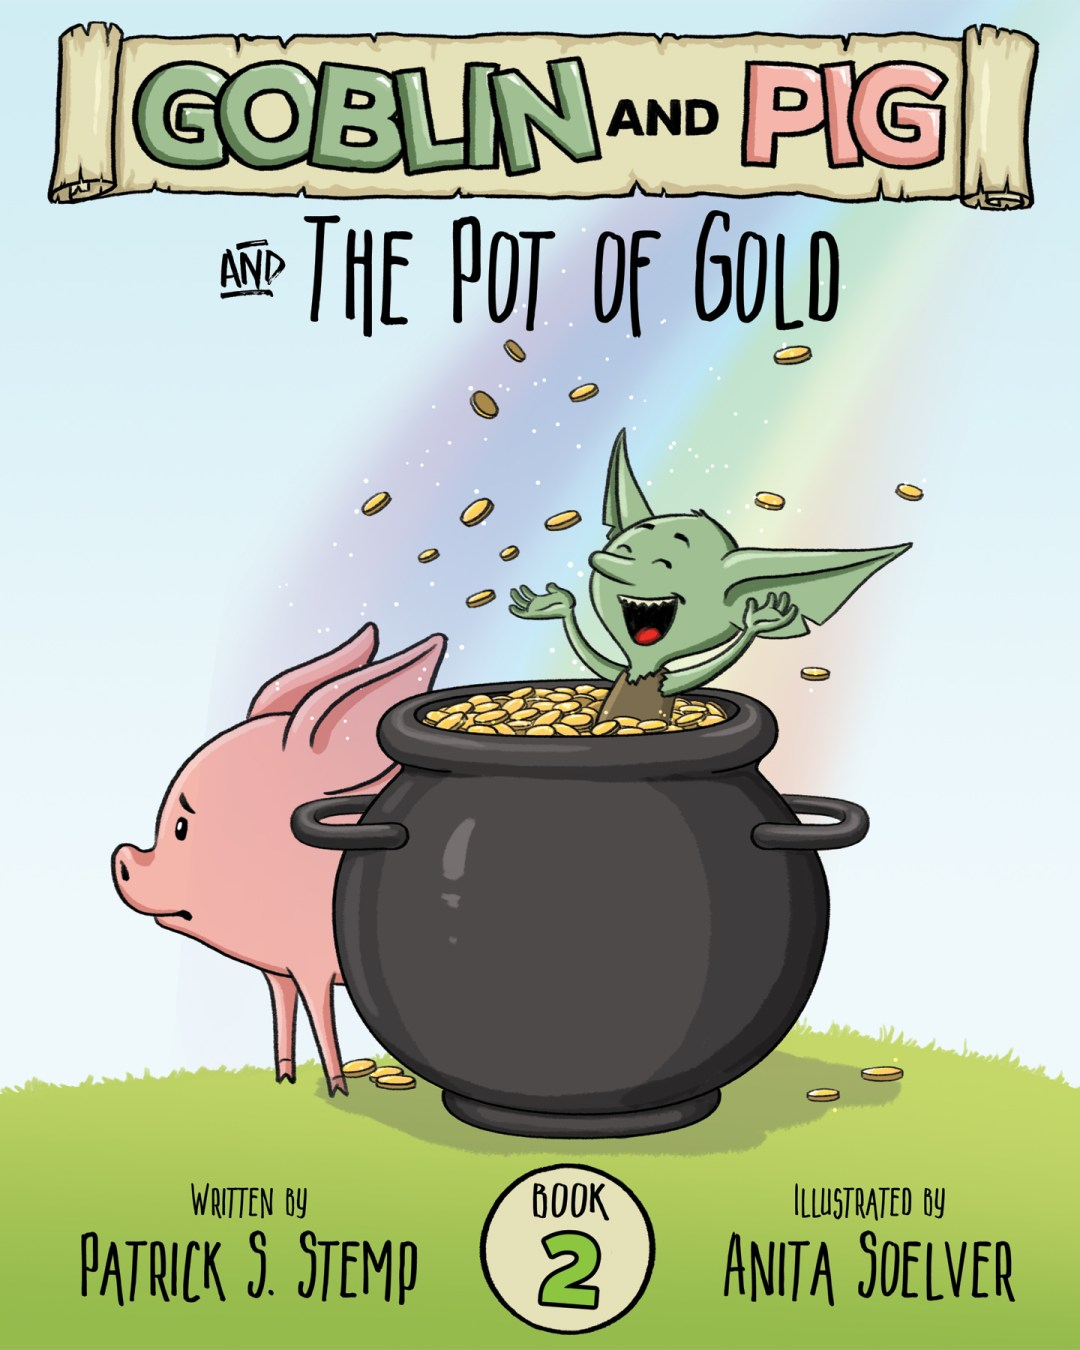 The Pot of gold (Goblin and Pig #2) | A children's book by Patrick S. Stemp & Anita Soelver